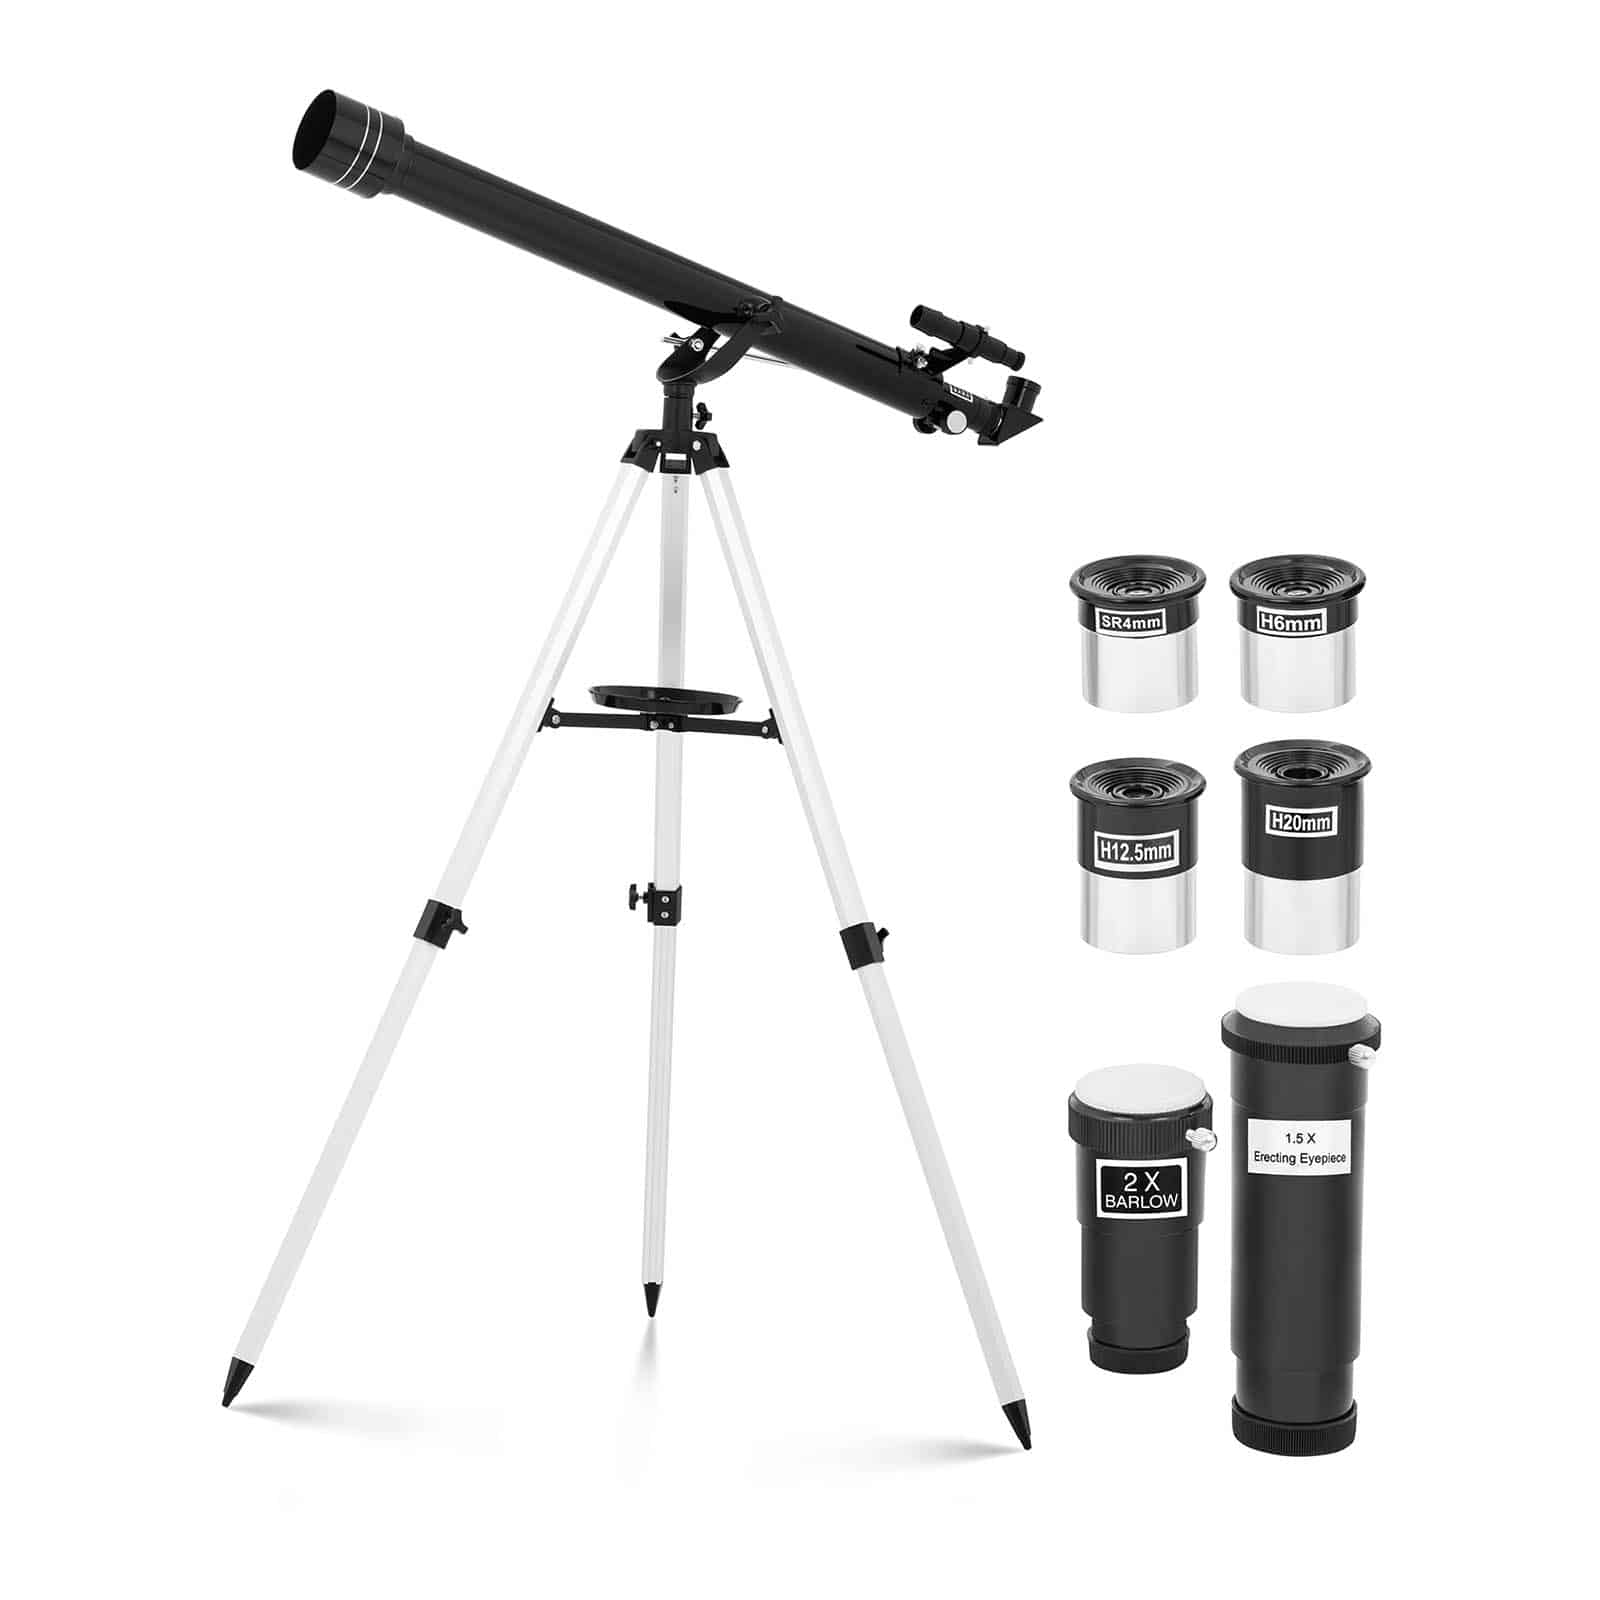 Black telescopes for professionals and beginners